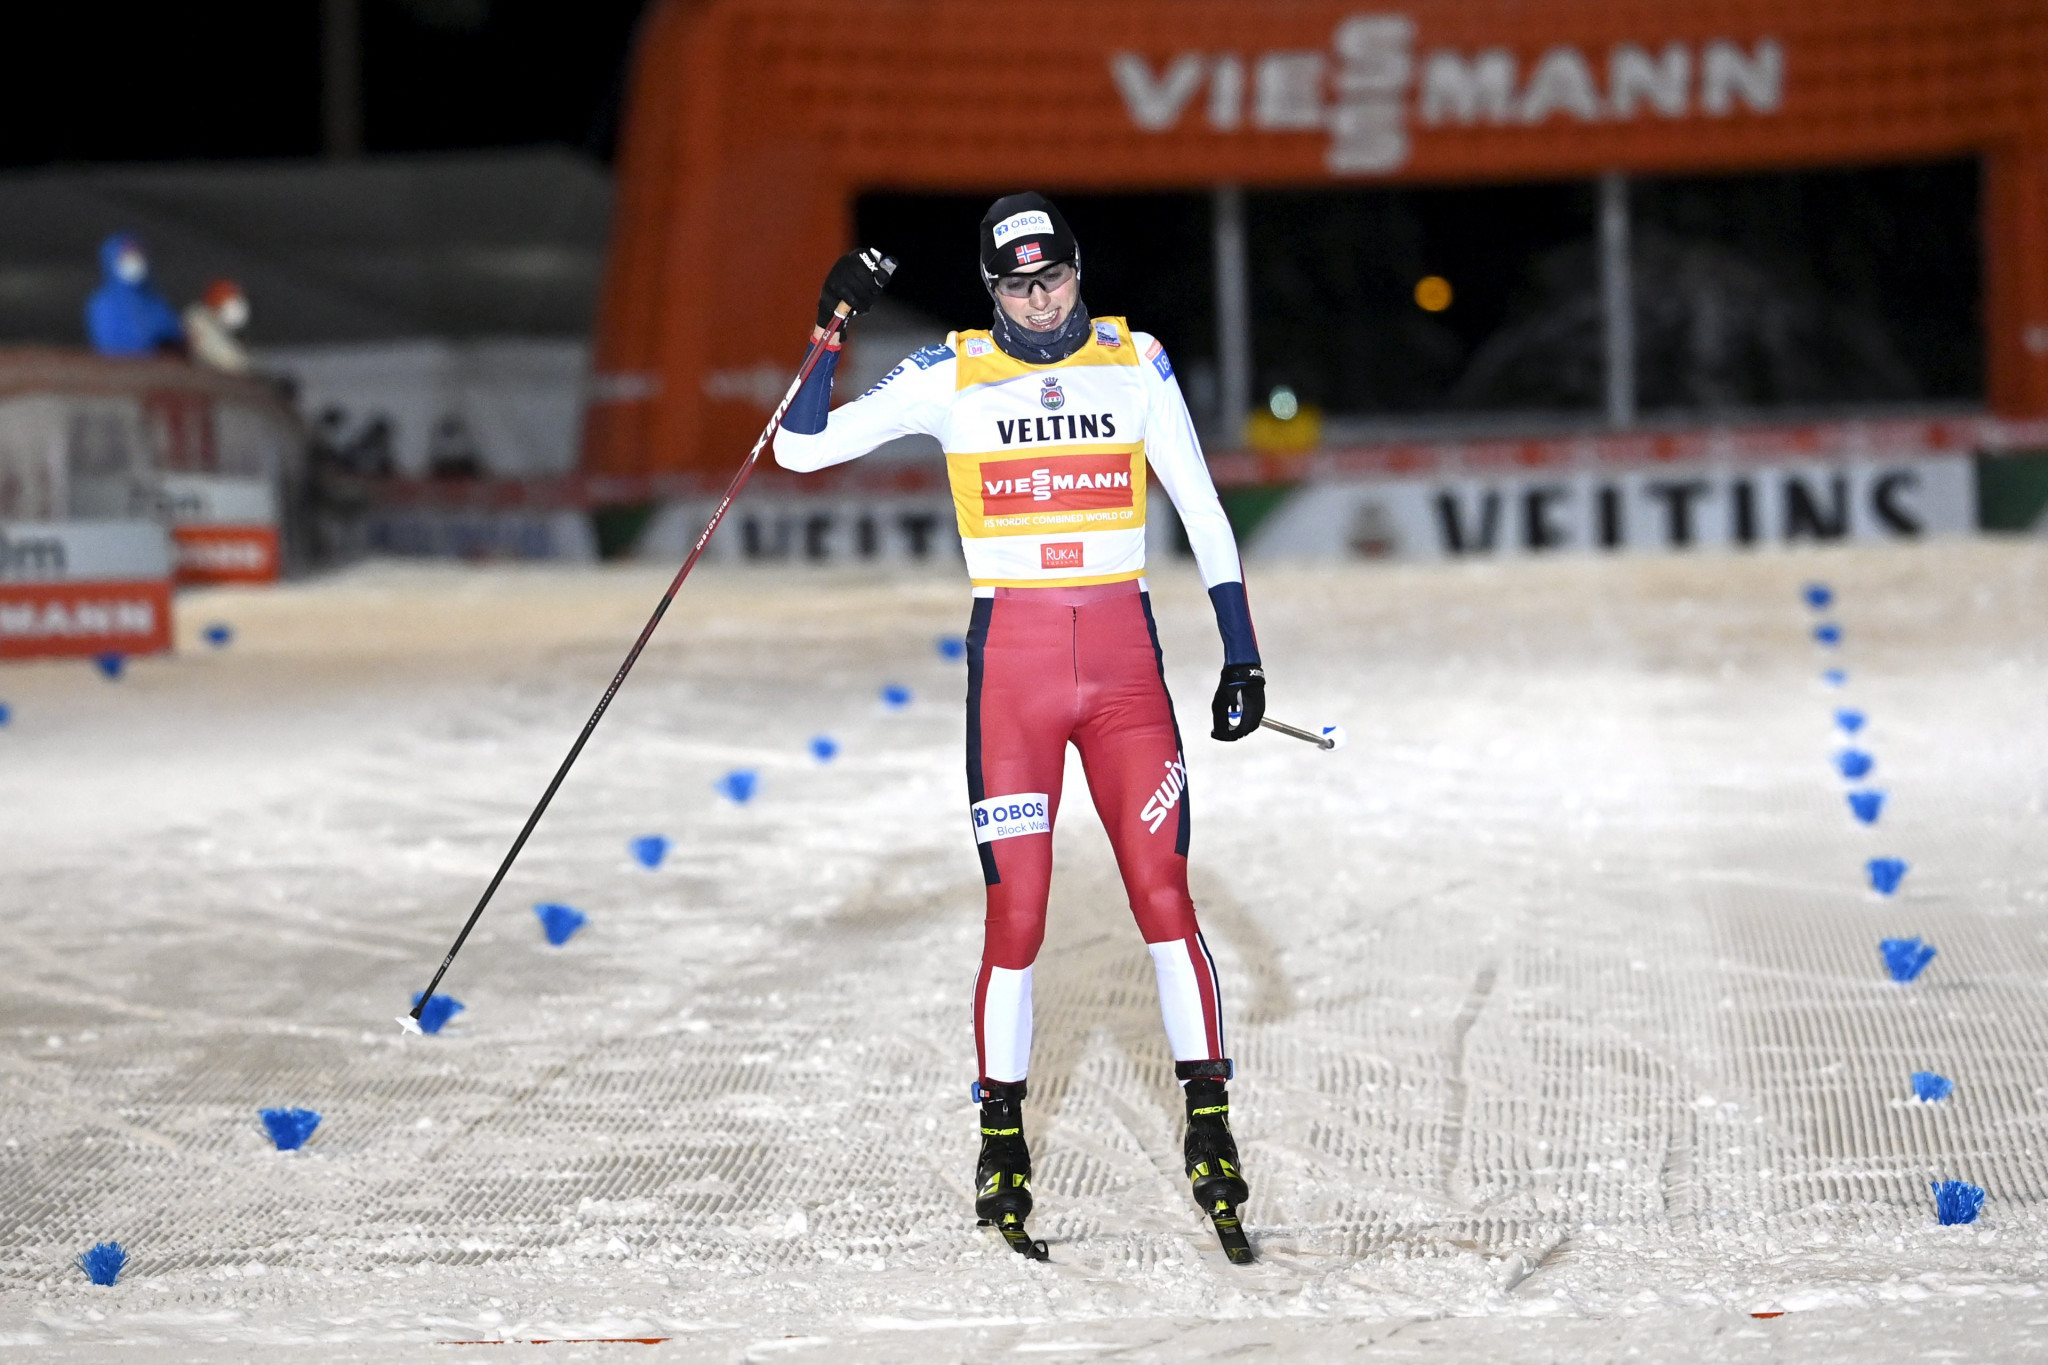 Riiber earns second victory at Nordic Combined World Cup in Ruka